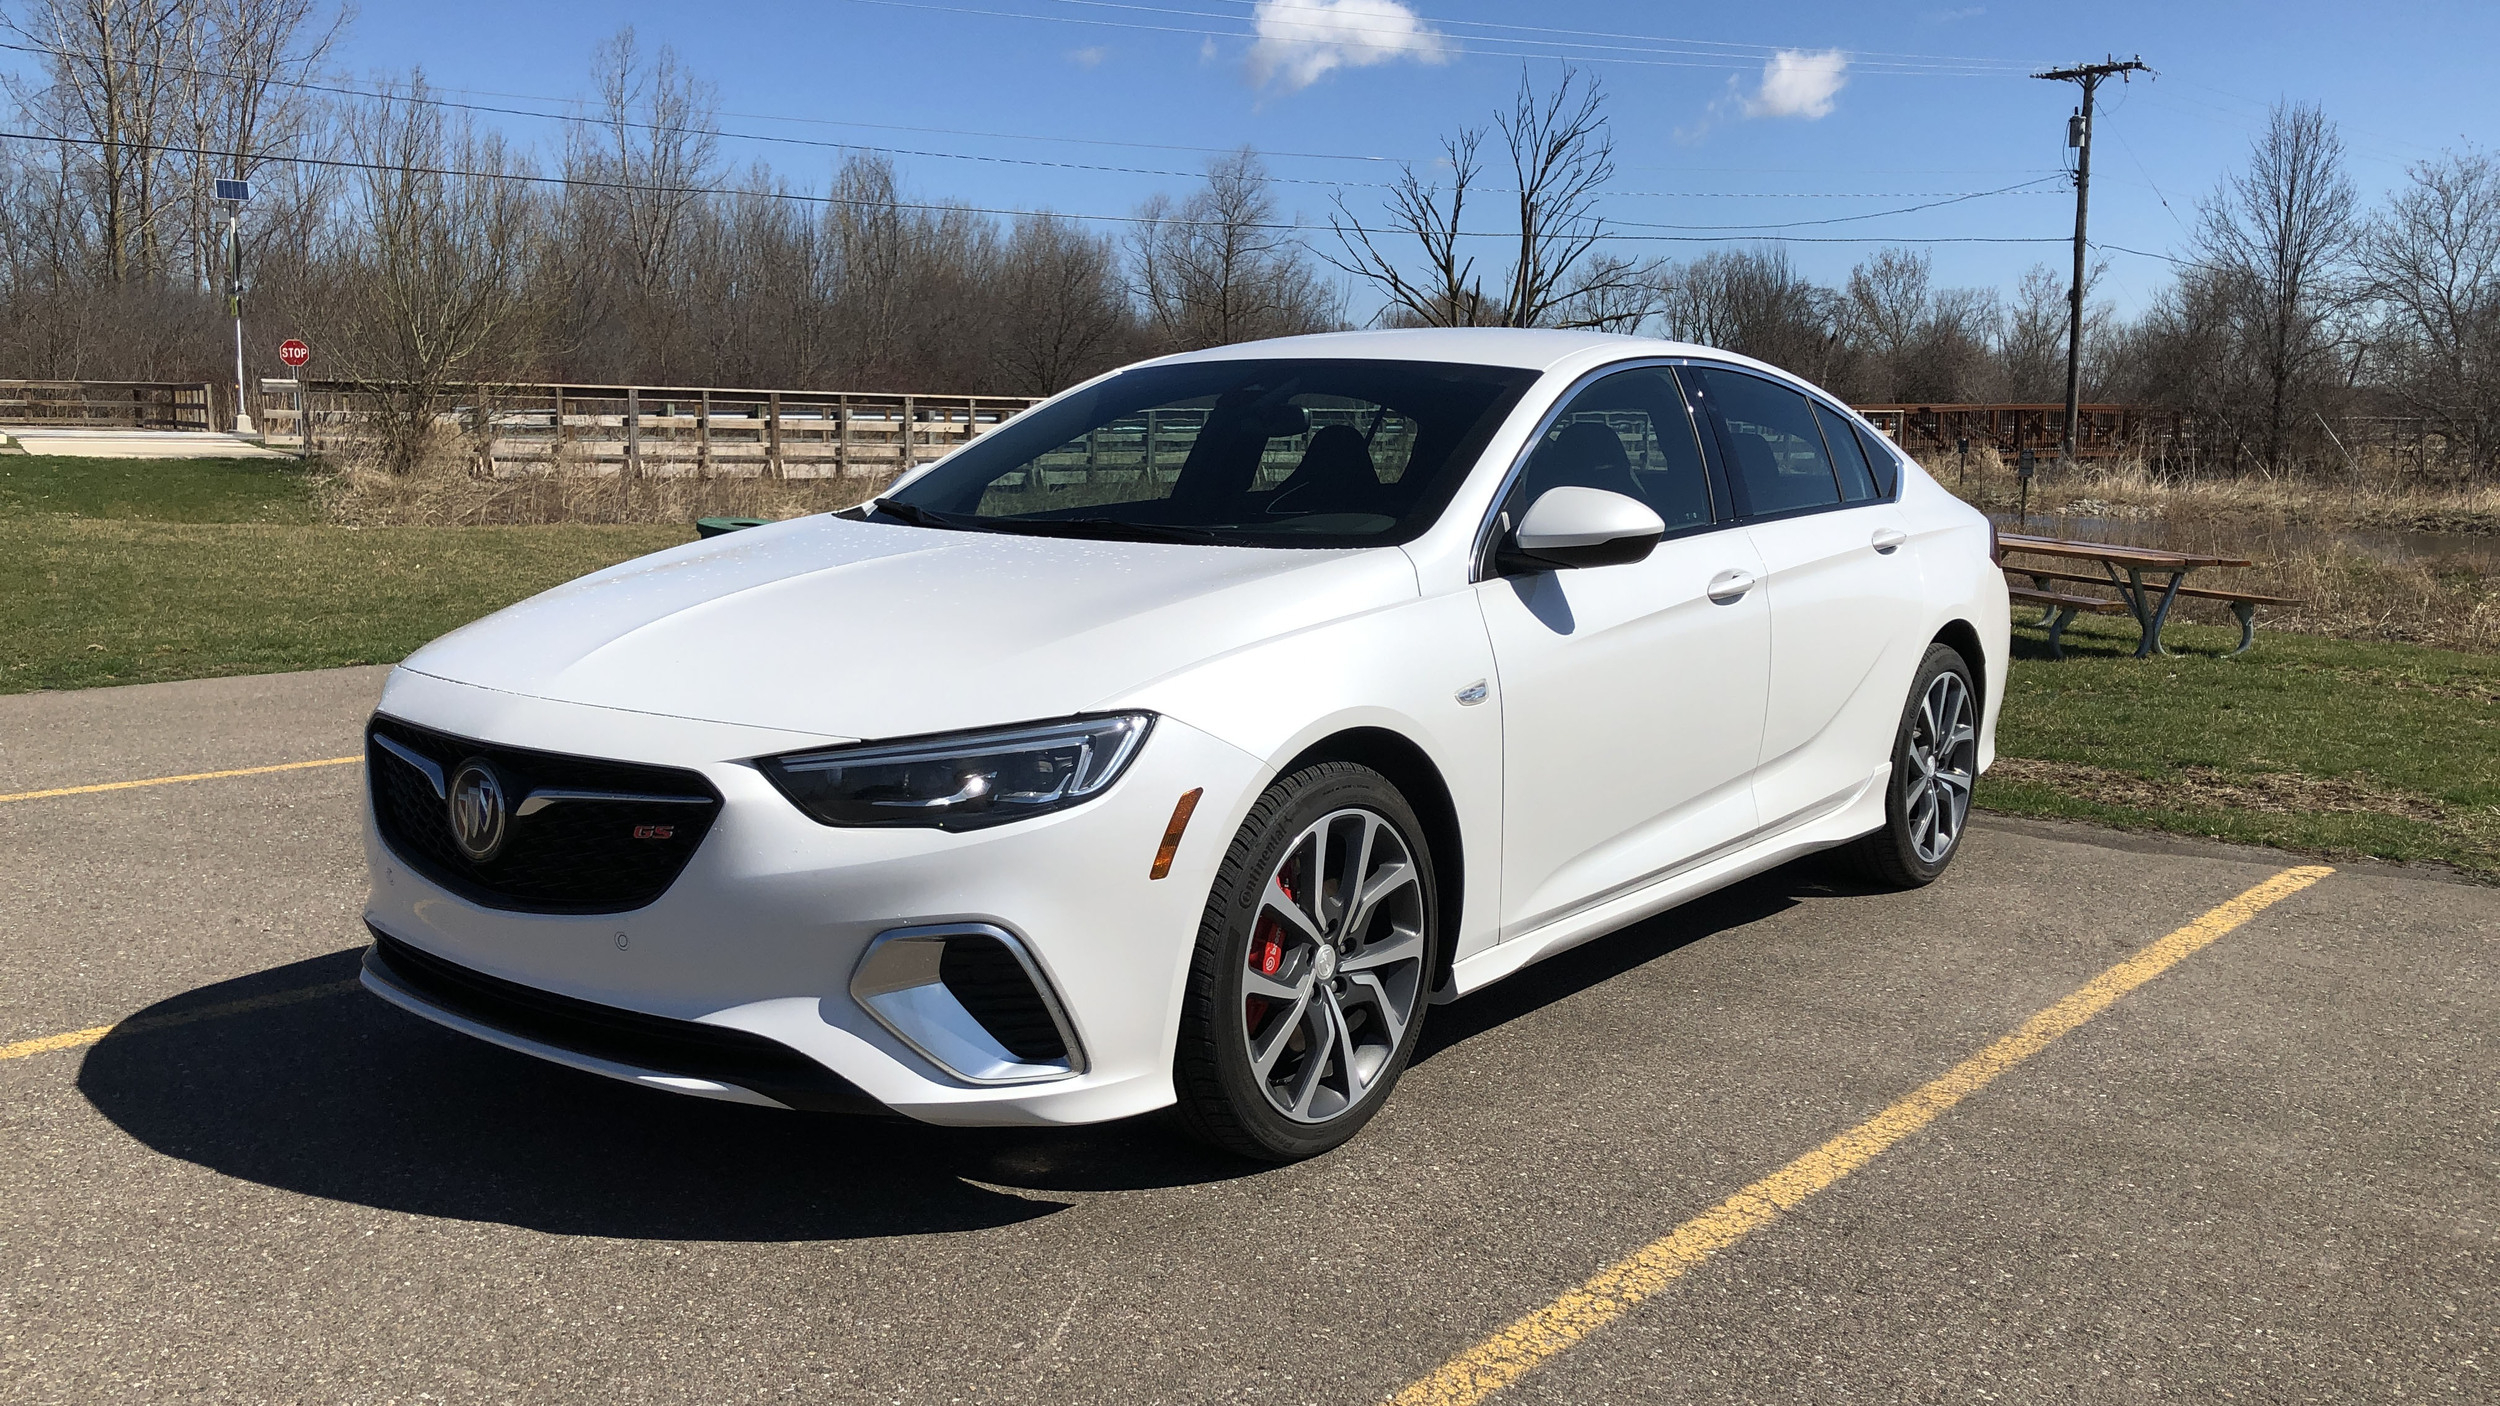 2019 Buick Regal Gs Review | Performance, Handling And 2022 Buick Regal Reviews, Images, Price